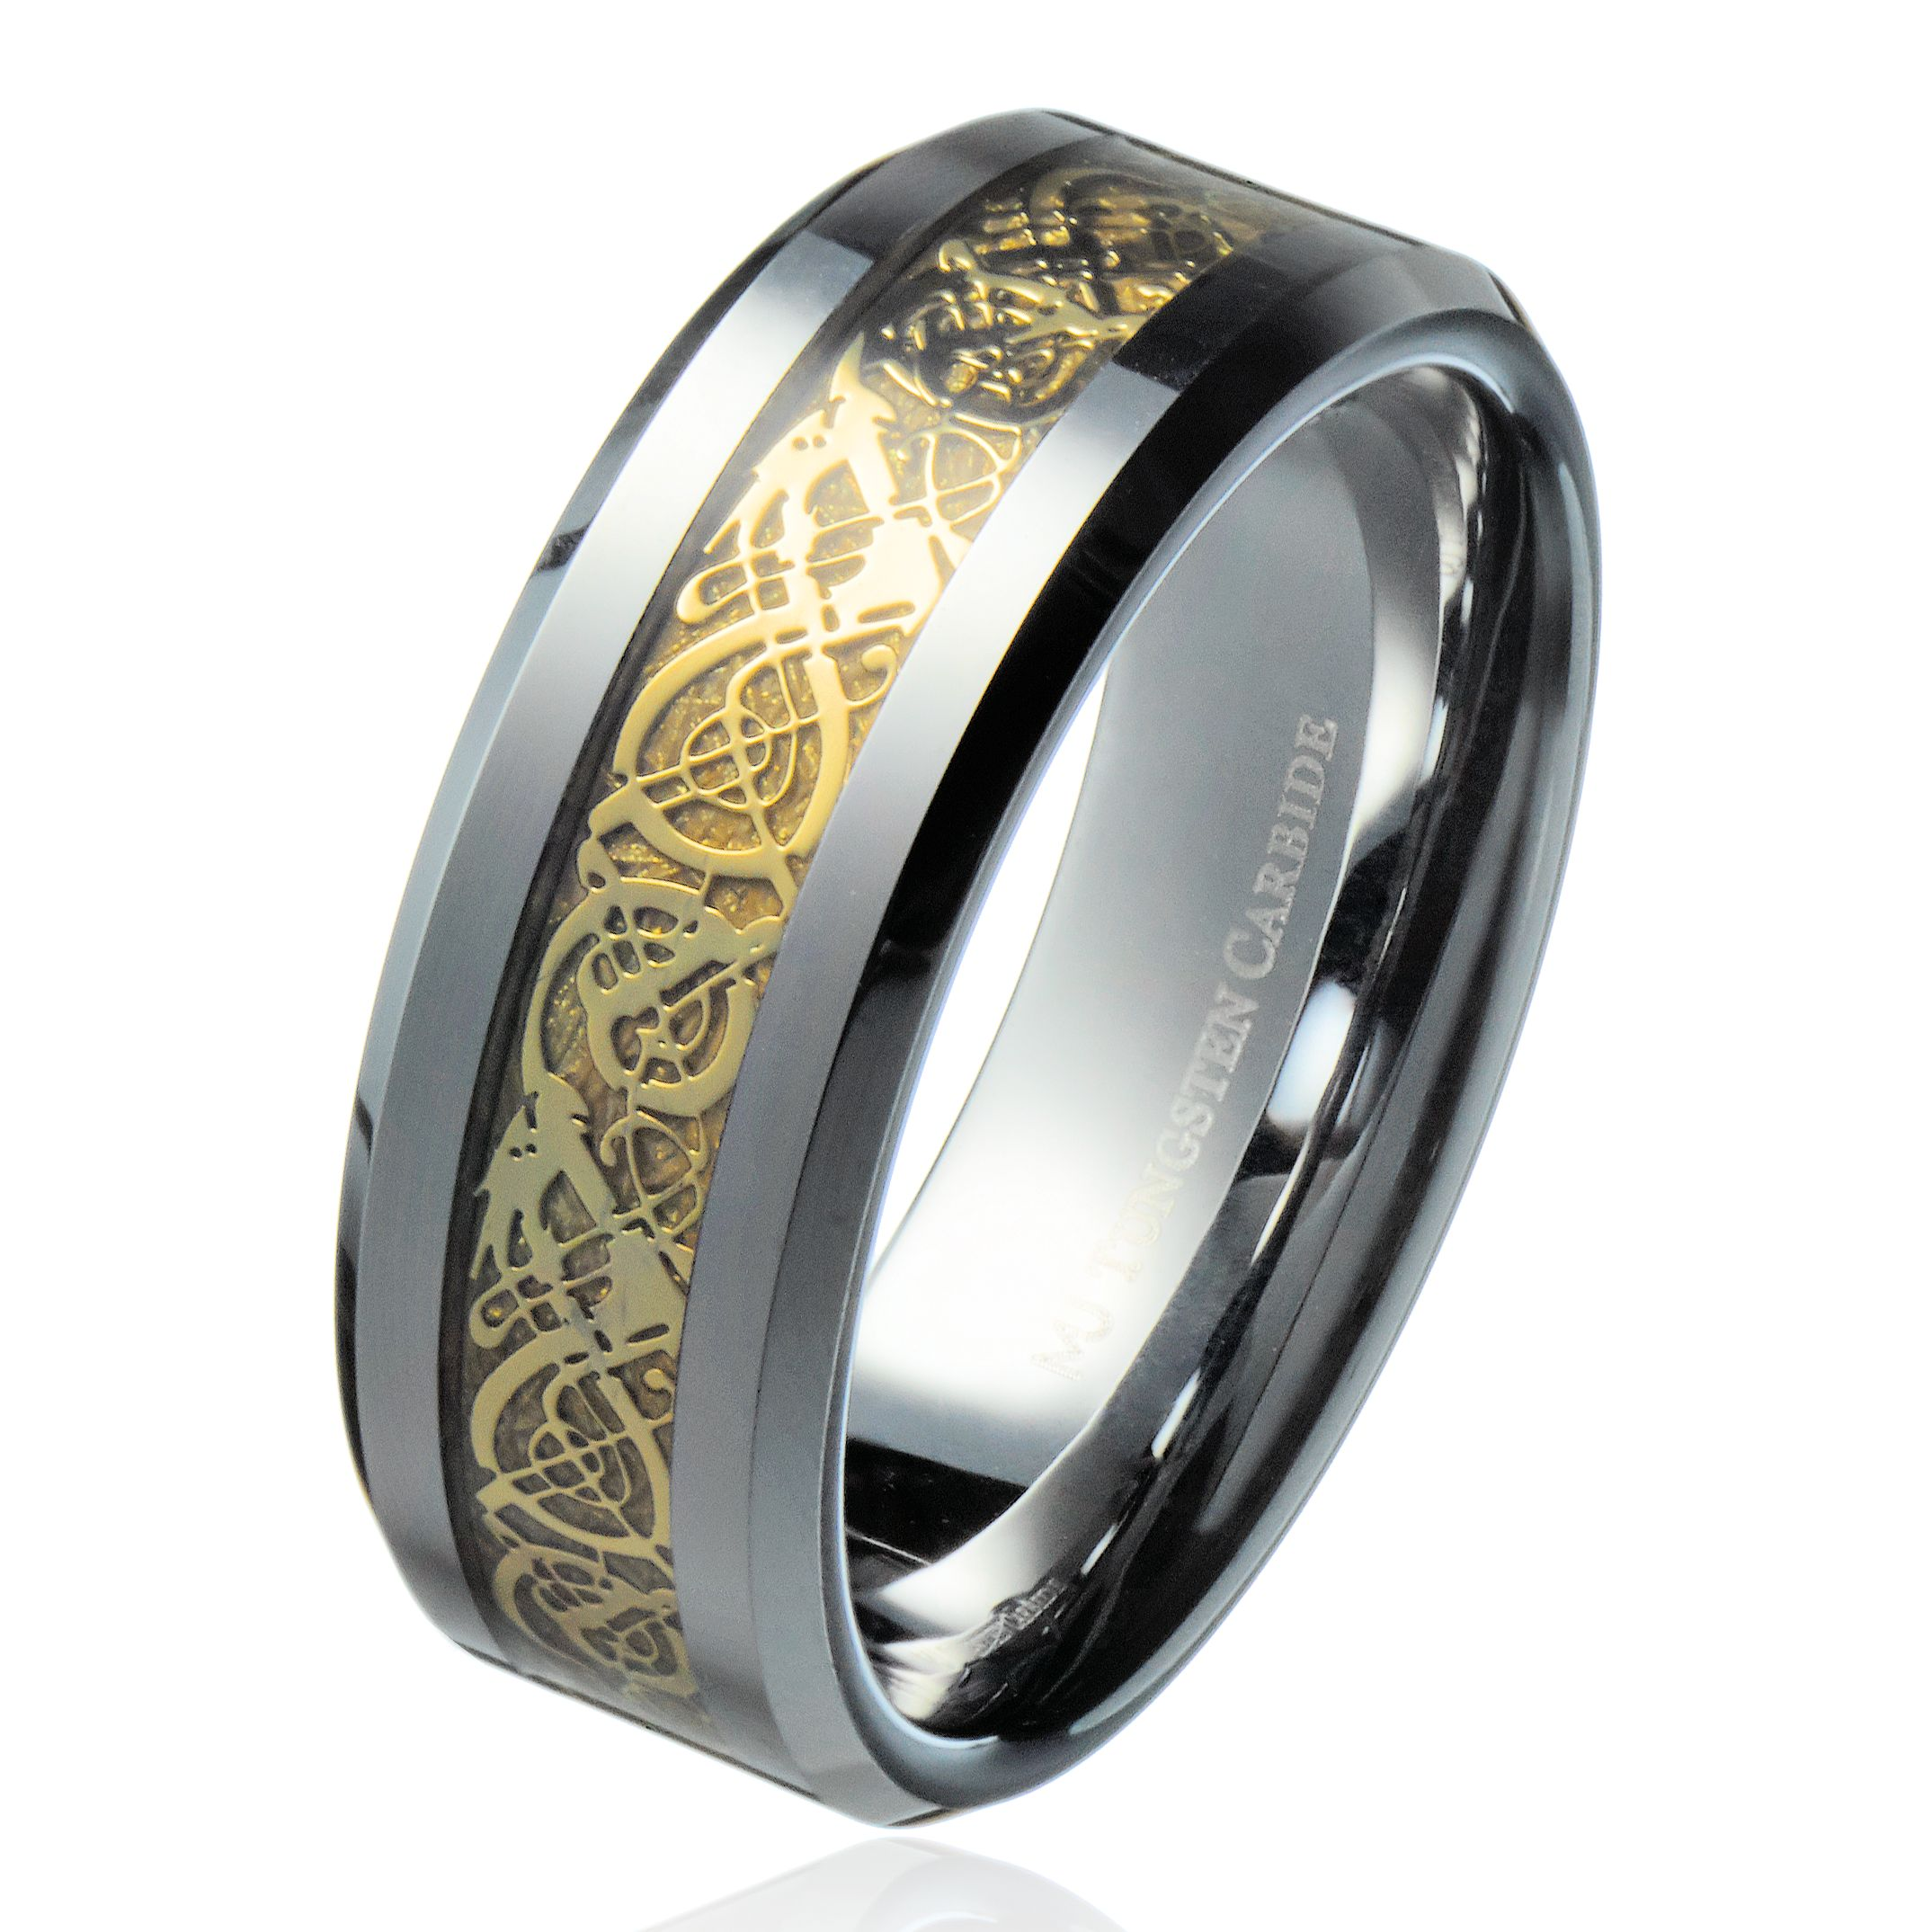 8mm Gold Celtic Dragon Ring Men's Tungsten Carbide Wedding Band Jewelry: Cross Backround Wedding Bands At Websimilar.org